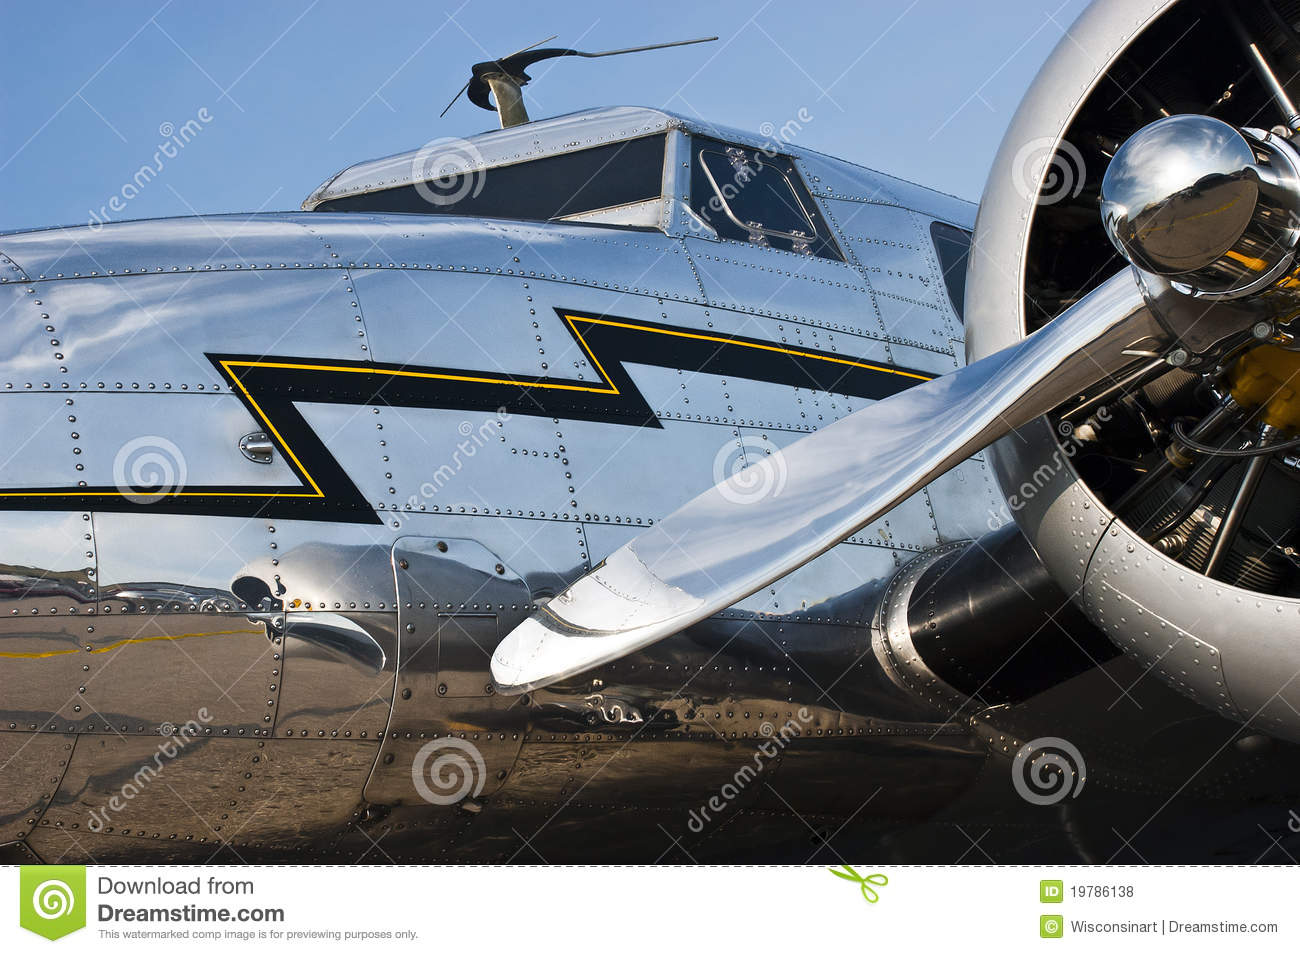 flight aviation concept vintage aircraft closeup royalty free